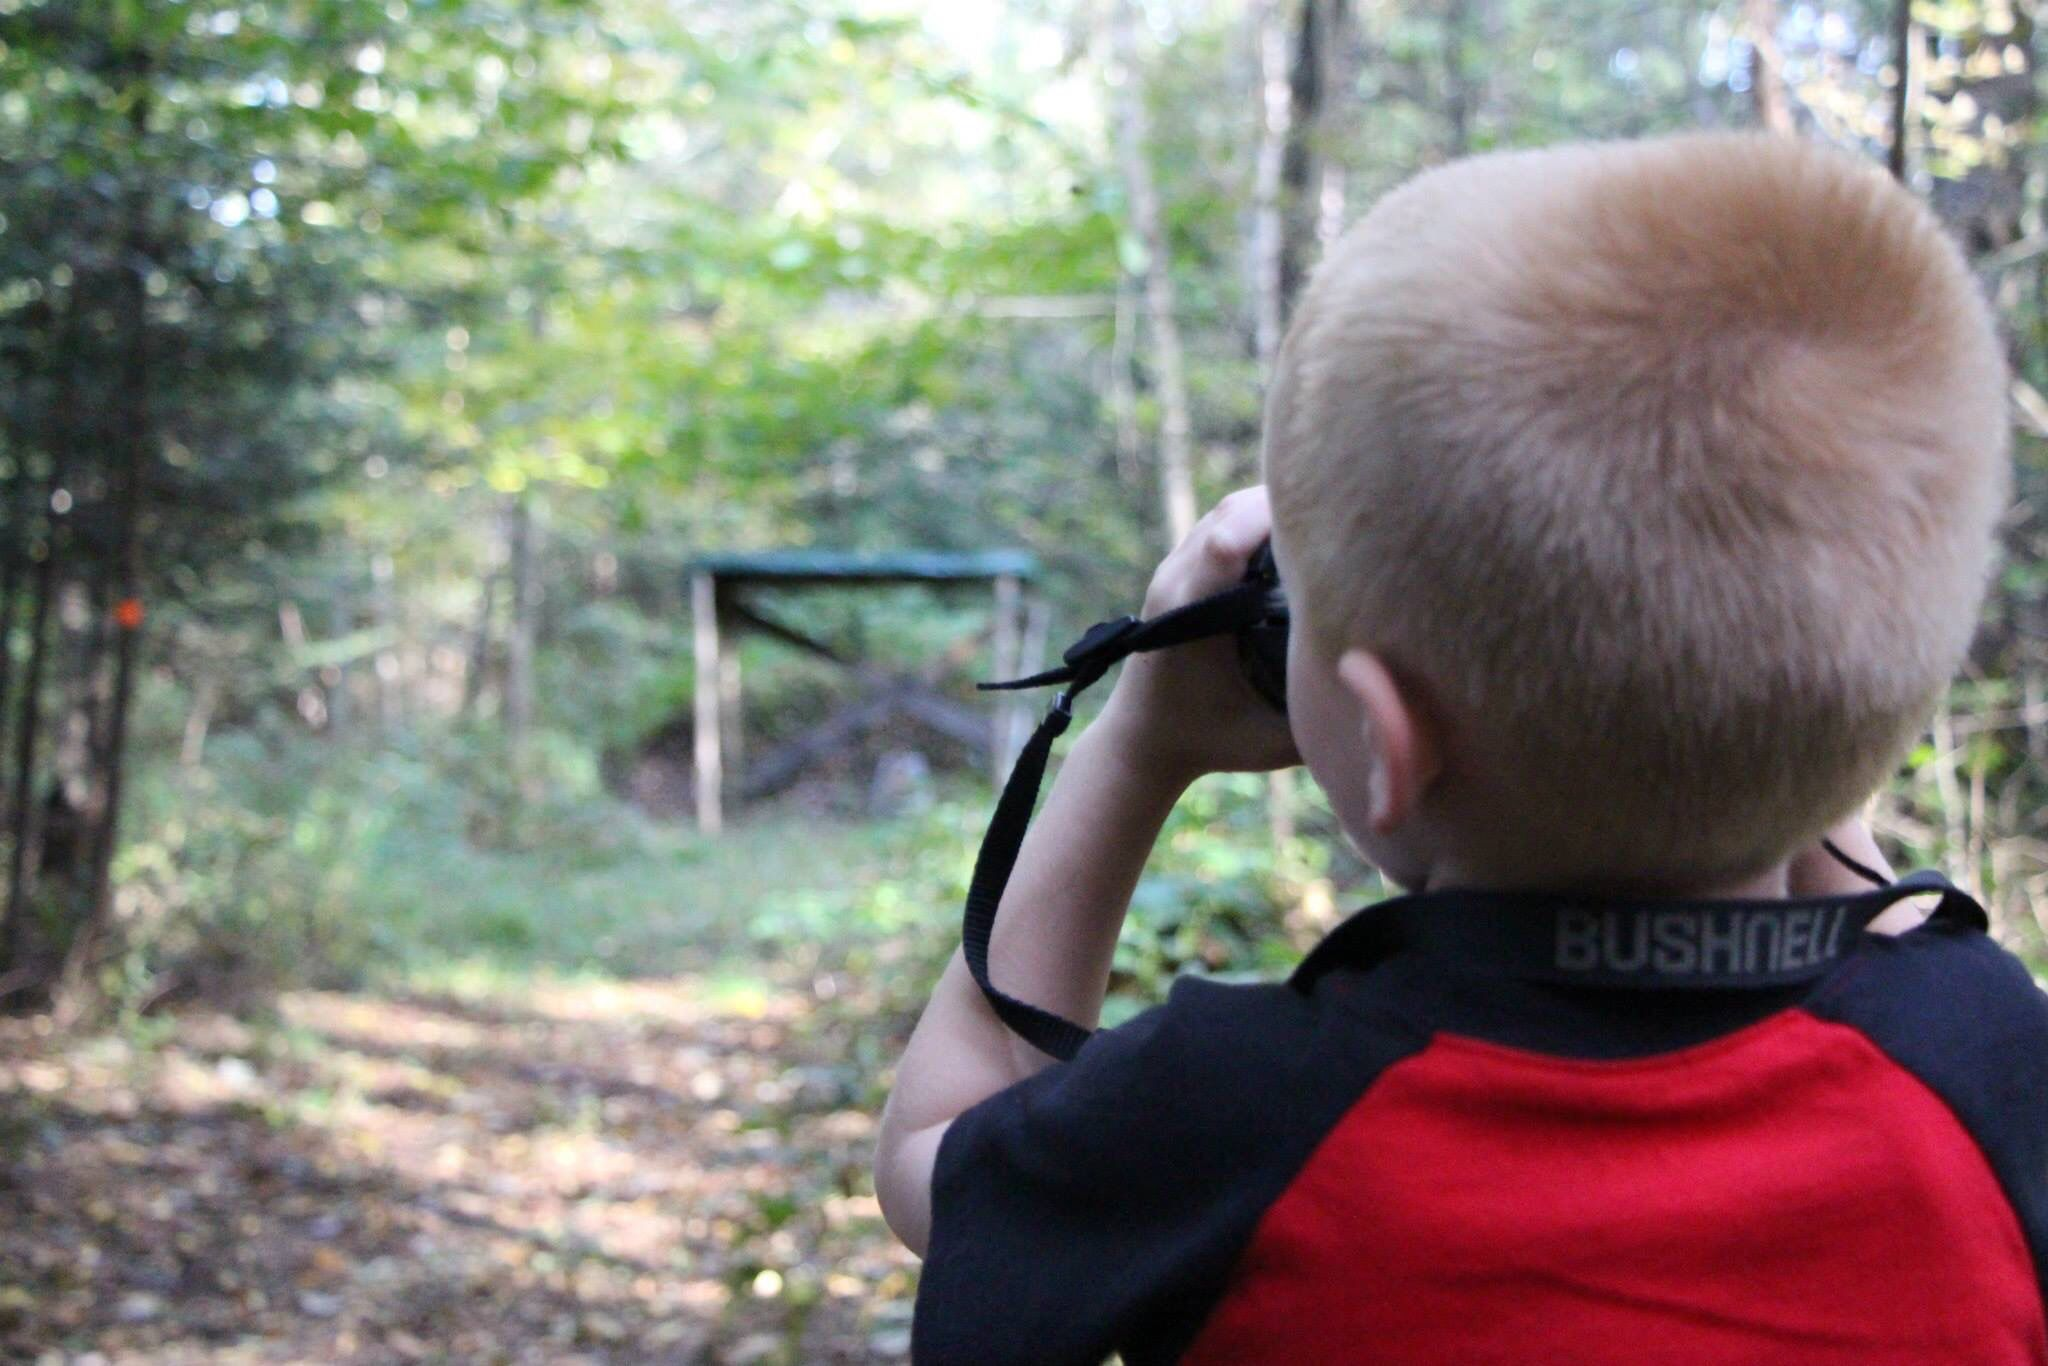 My youngest son trying out a range finder.  Sometimes hunting interests can start at a young age.  Teach them correctly from the beginning and keep their interest up.